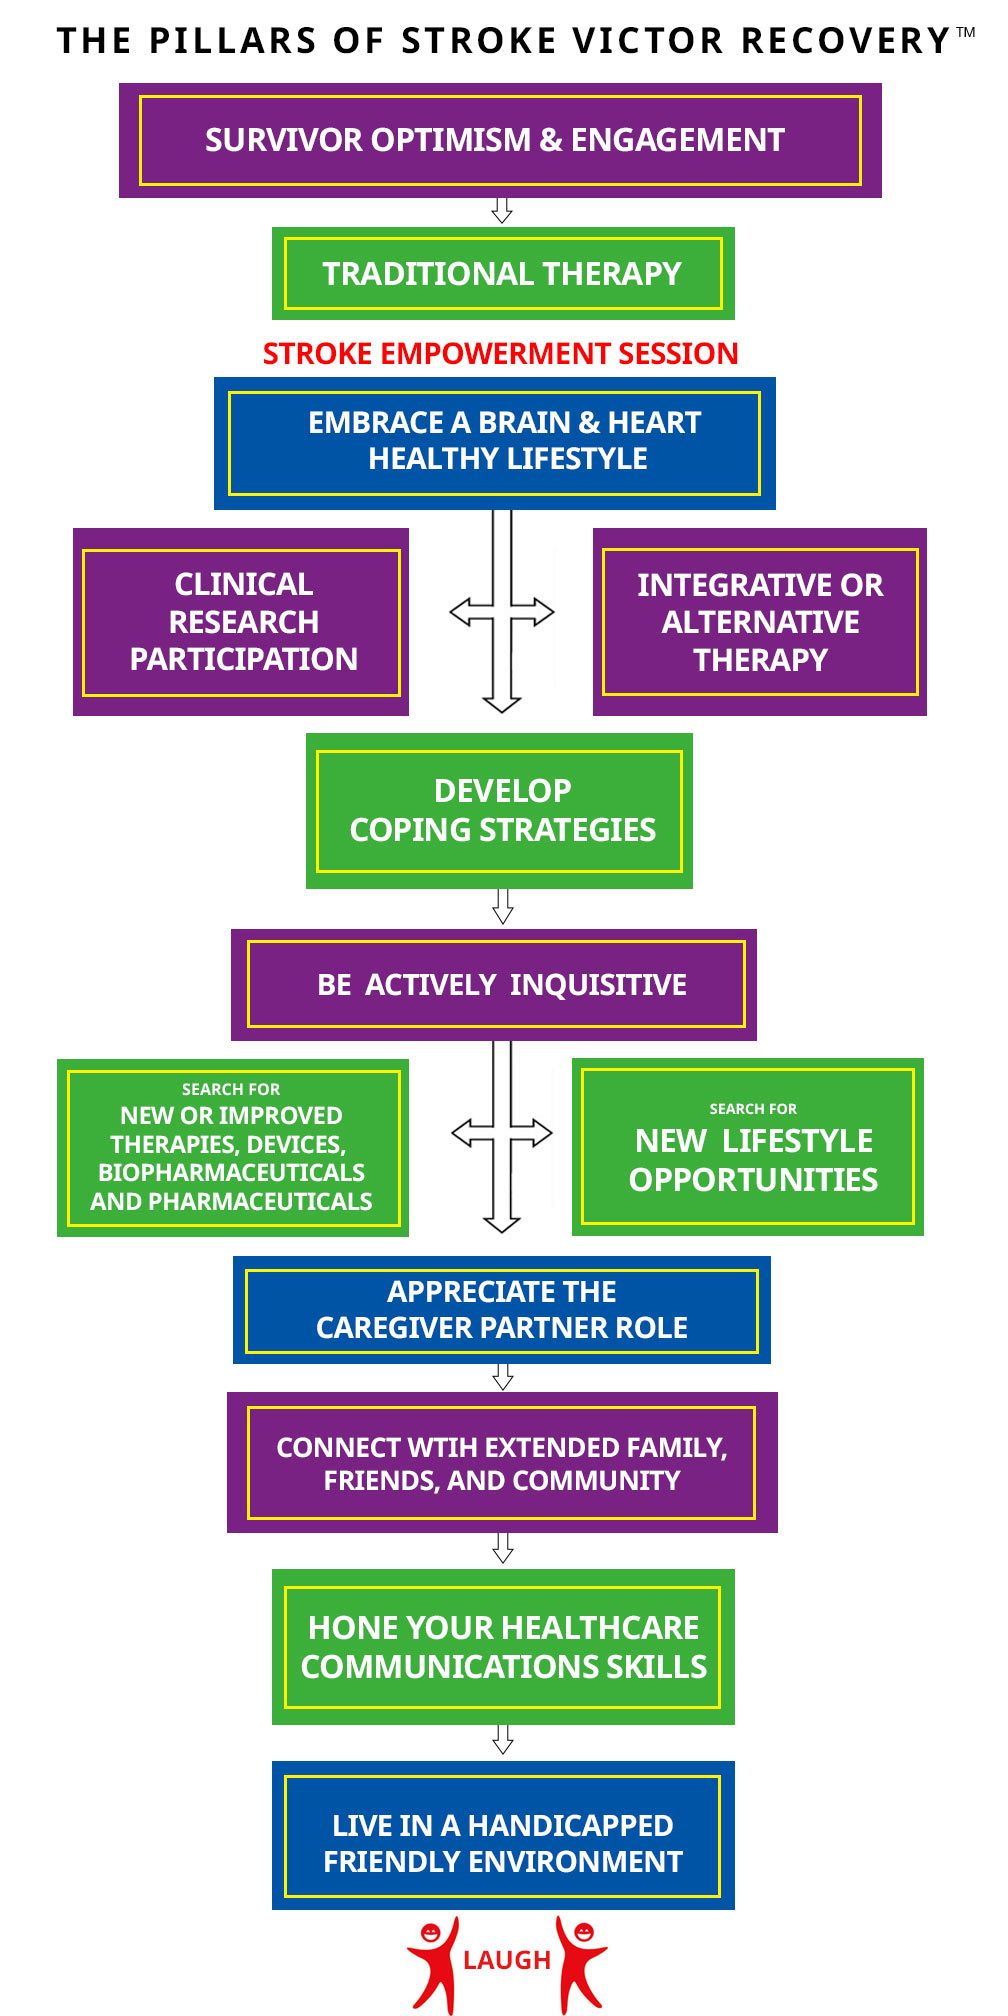 12 Pillars of Stroke Victor Recovery | Stroke Recovery Foundation